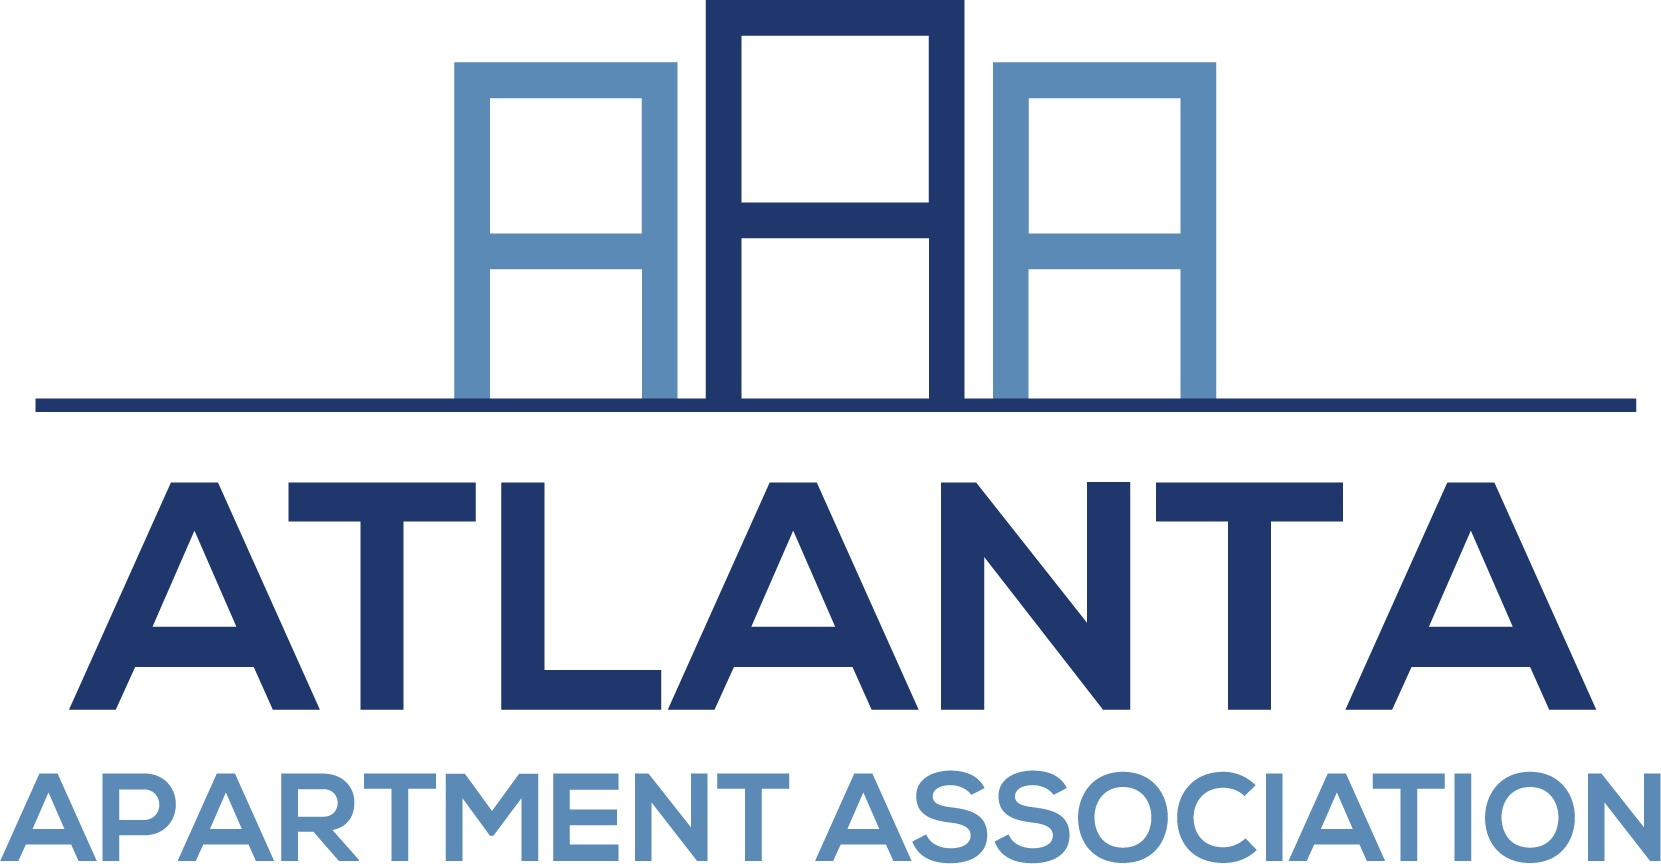 Atlanta Apartment Association 2018